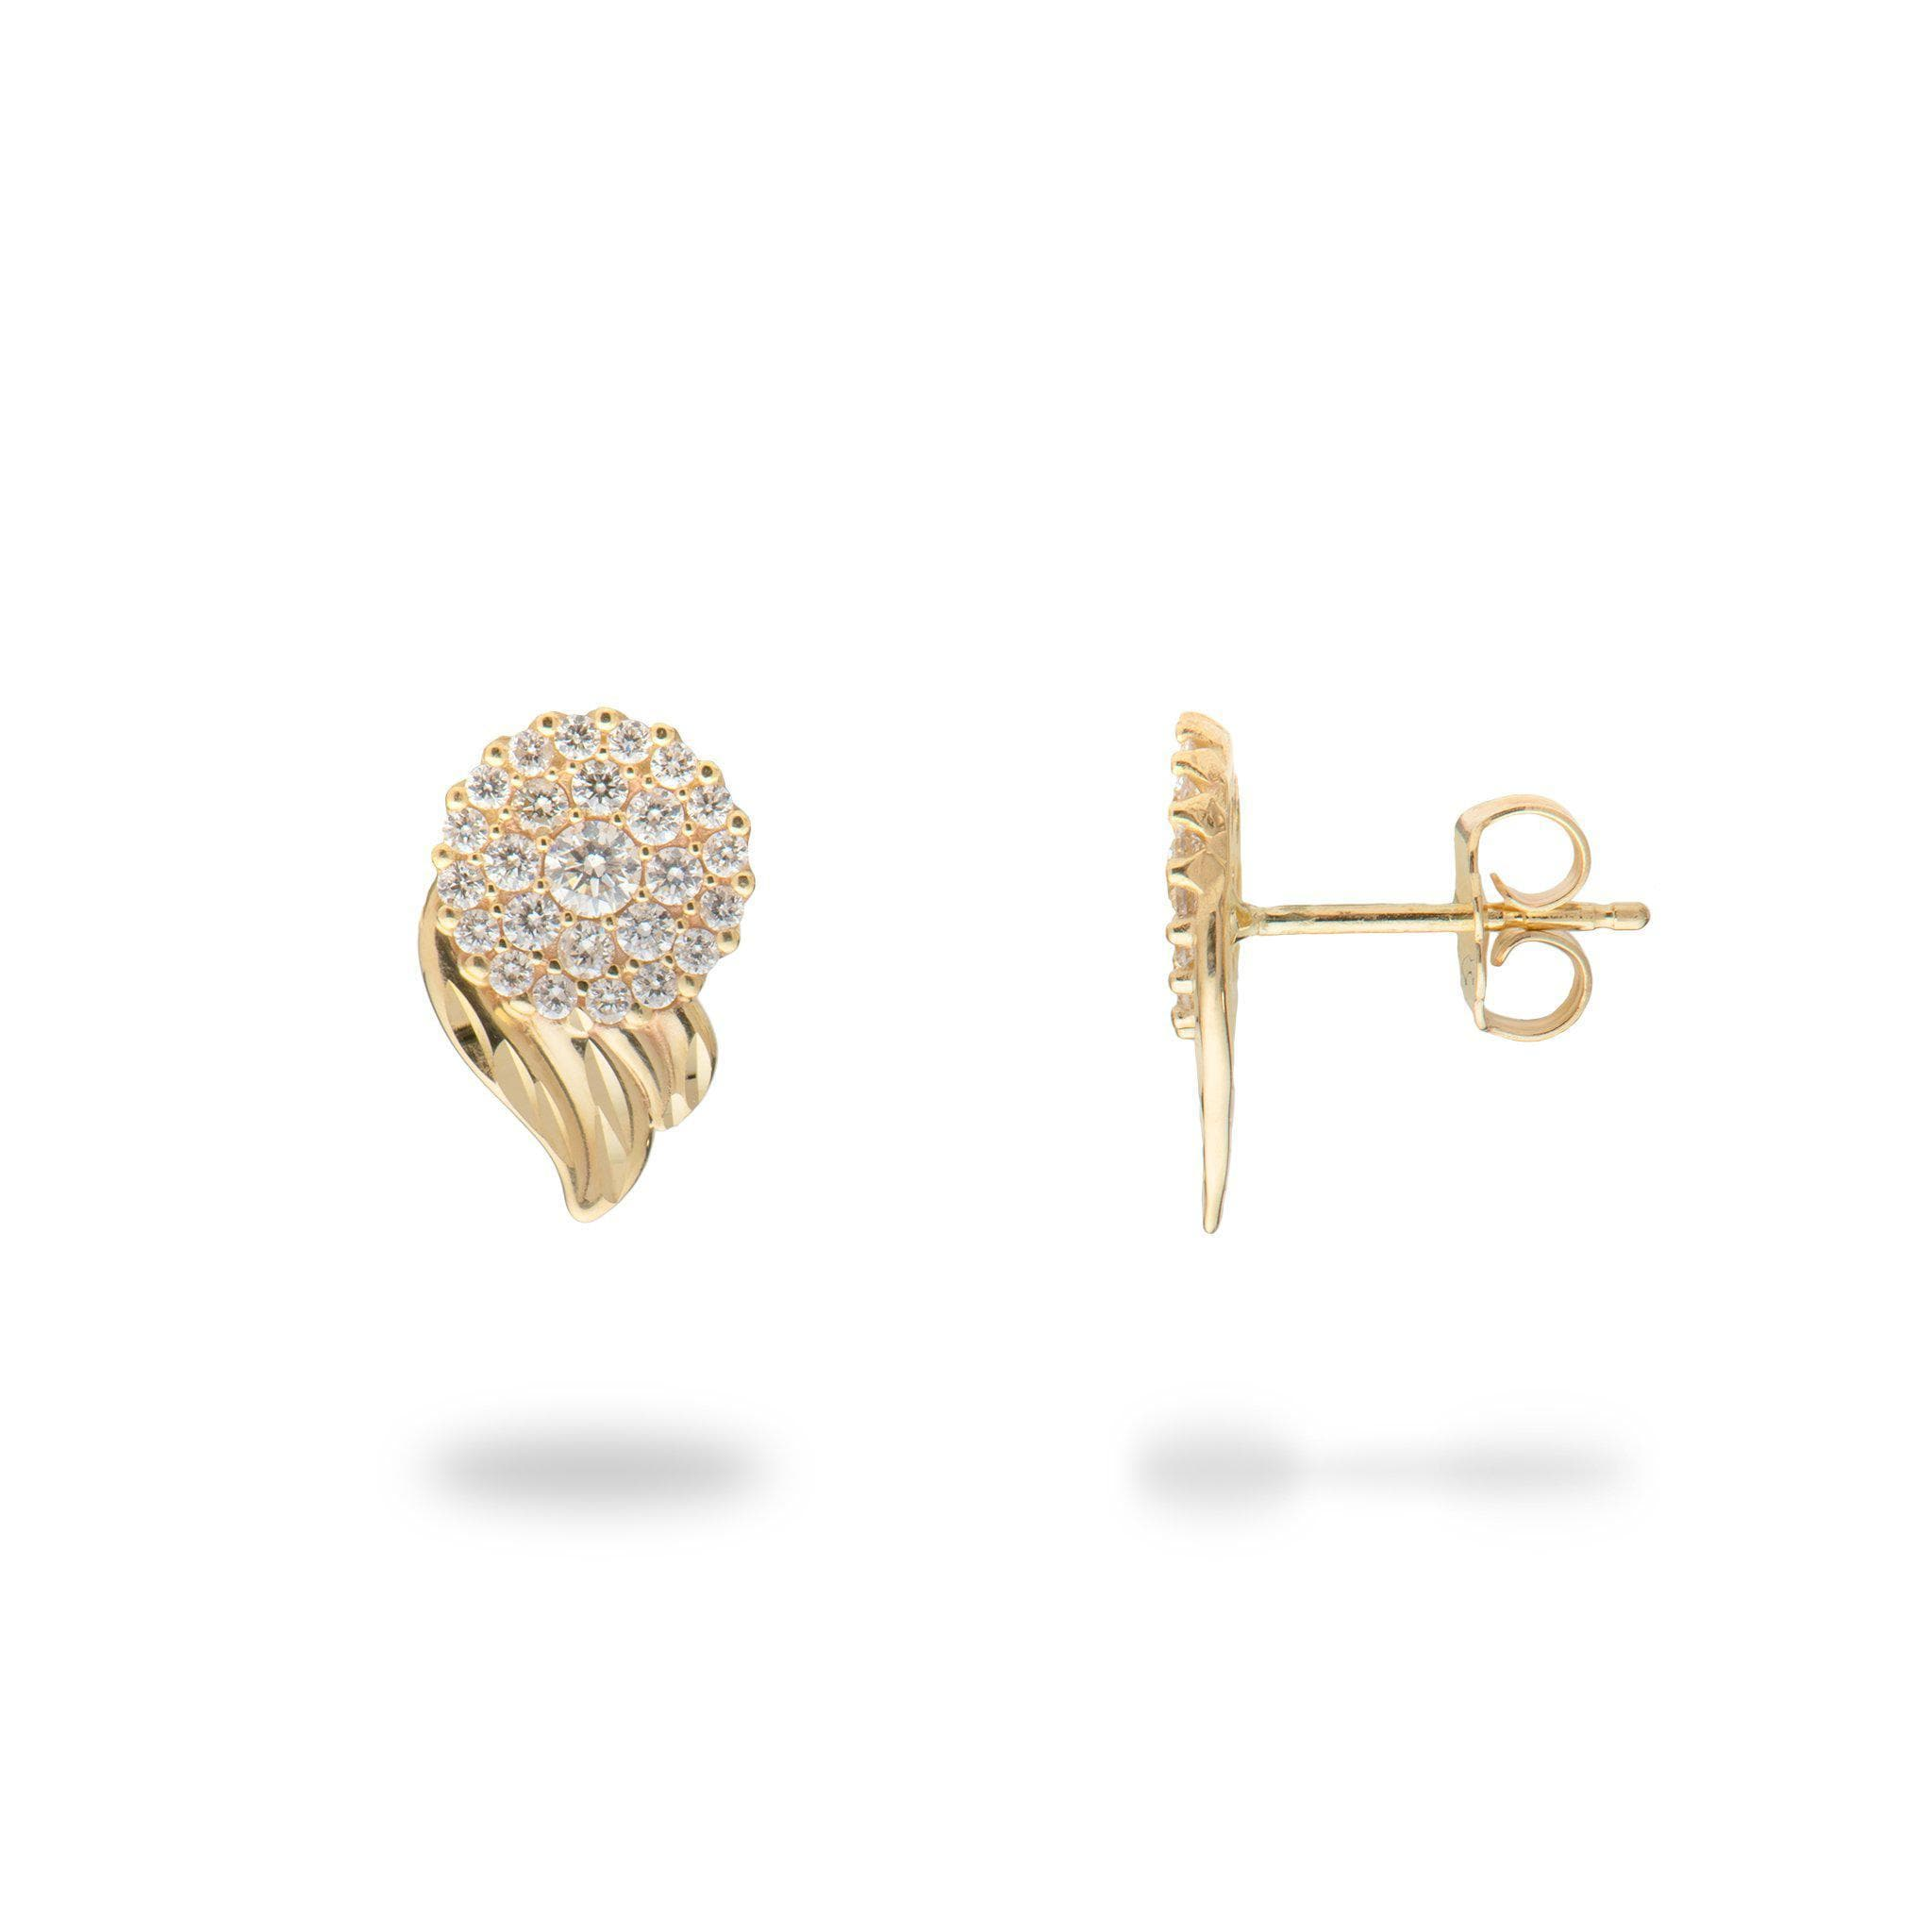 02db84f4a Maile Moon Earrings in 14K Yellow Gold with Diamonds | Maui Divers ...